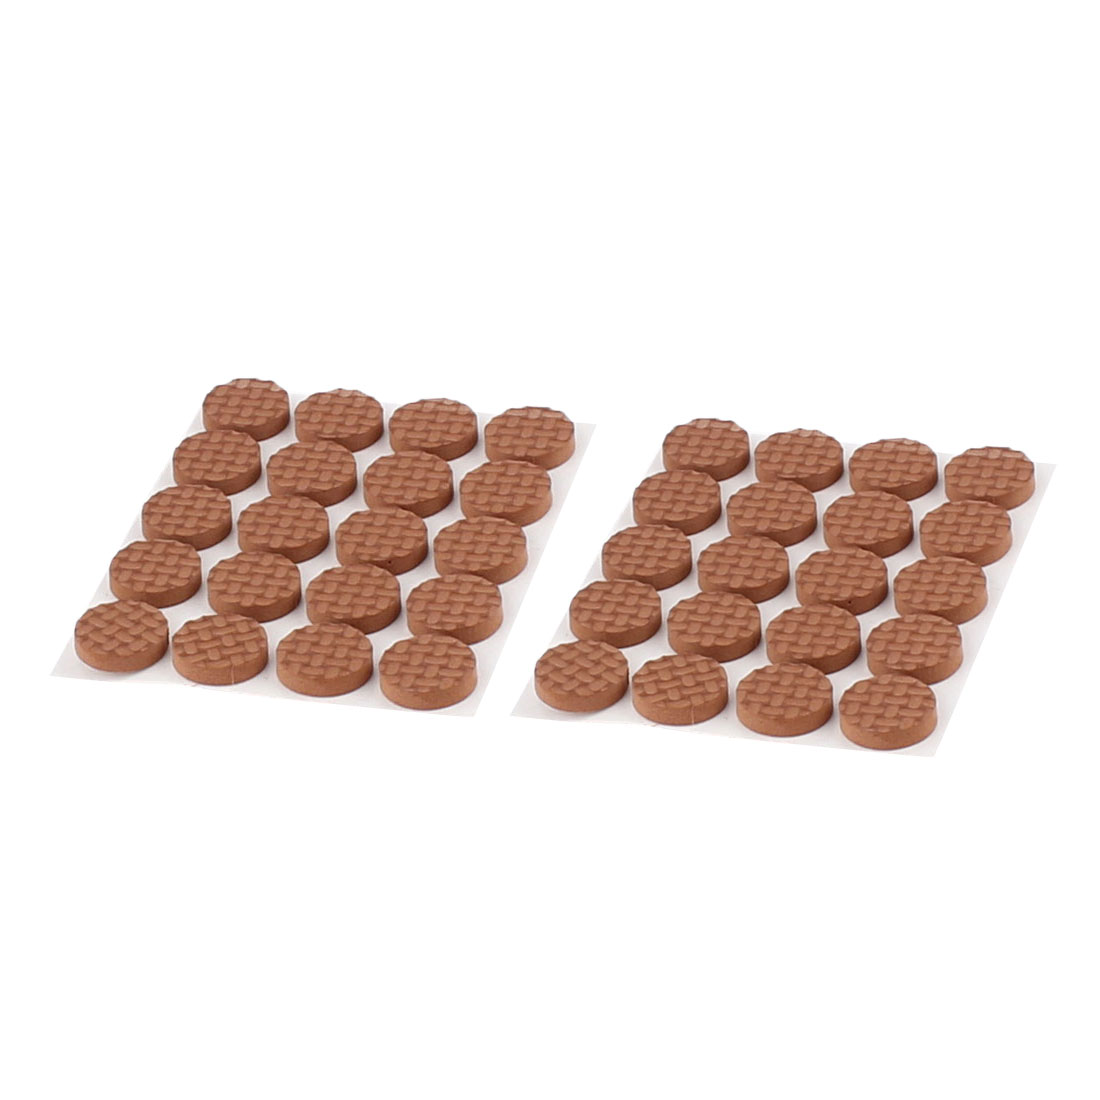 Table Chair EVA Round Anti Scratch Furniture Feet Pads Covers Cushion Brown 15mm Dia 40pcs